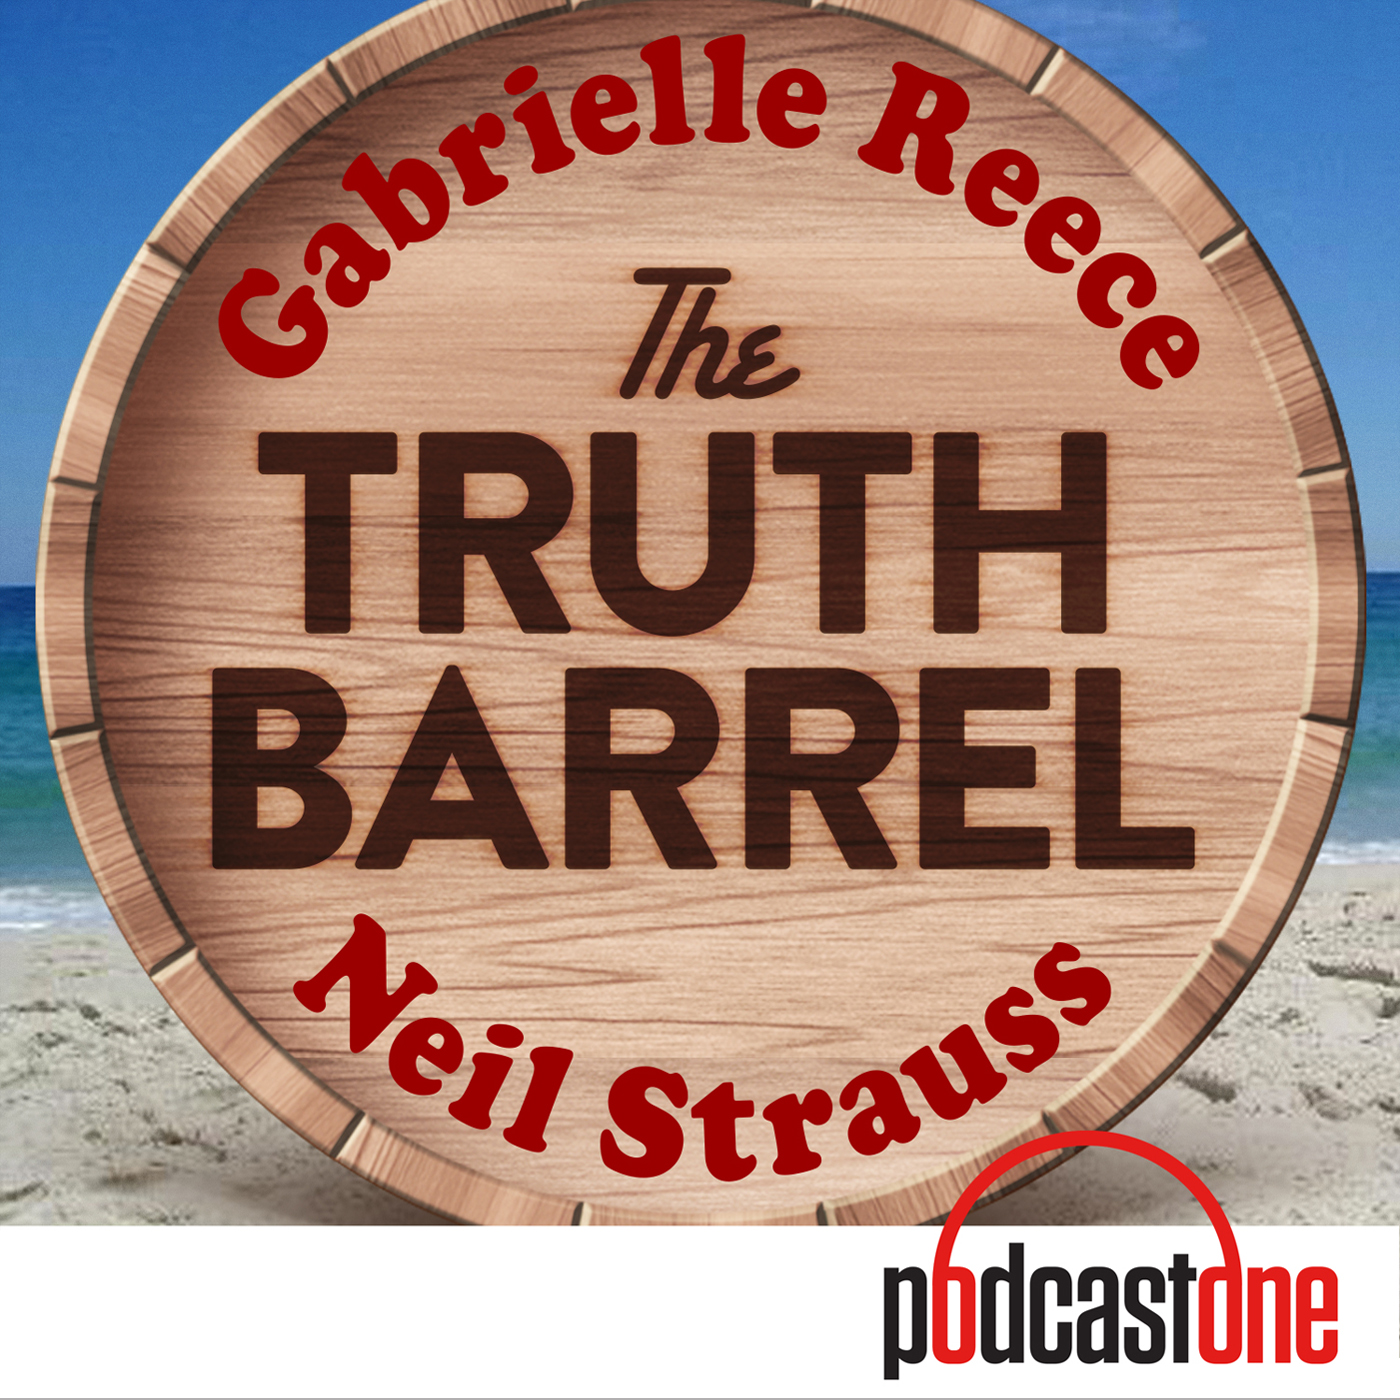 The Truth Barrel - This now discontinued podcast features Gabby Reece (whom I love) and Neil Strauss (not so much), but they have great guests and the podcast is recorded in a sauna.